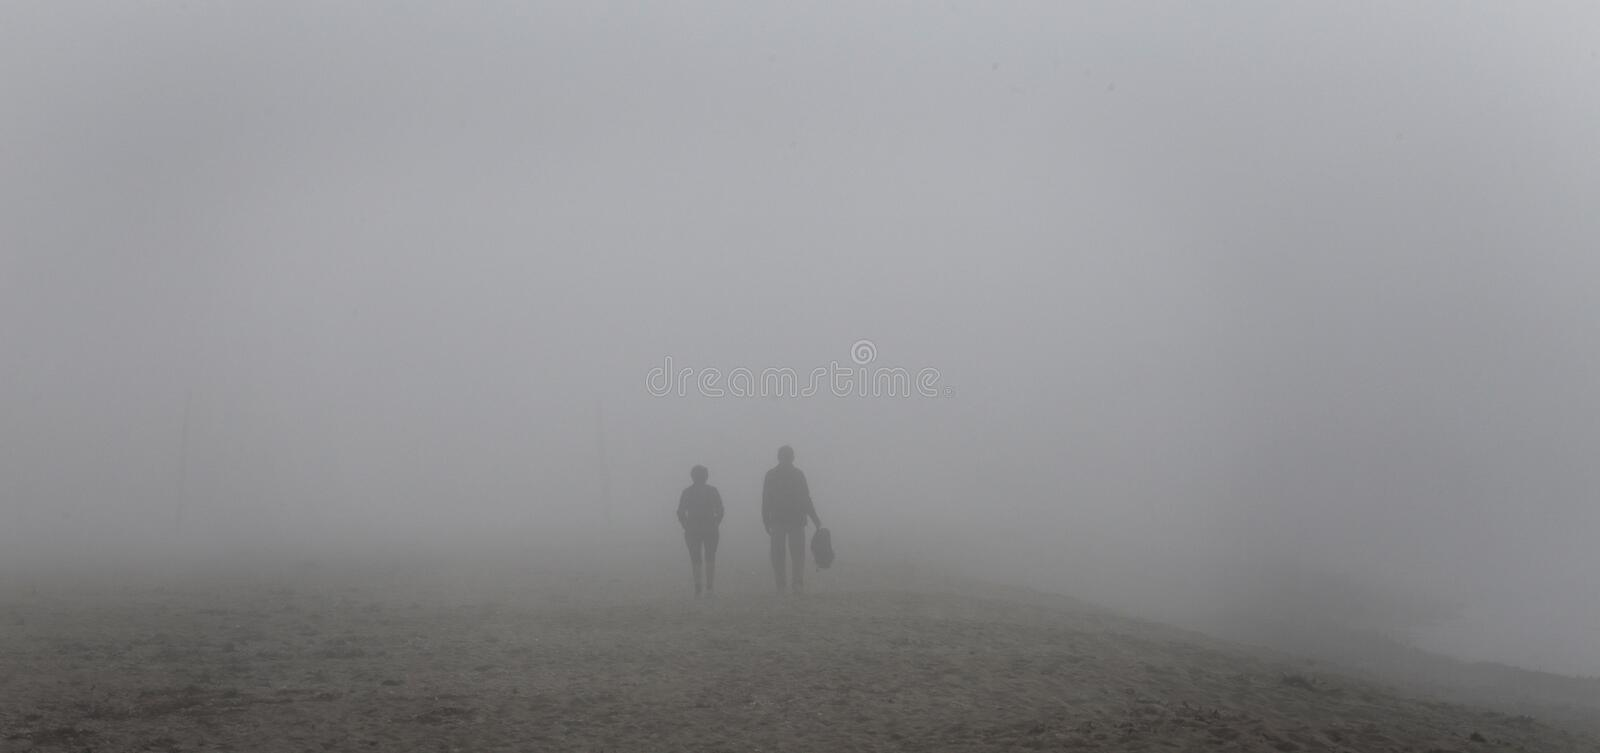 People walking on the beach under a heavy midday Fog covering el arenal beach in mallorca. Rare and unusual heavy fog over the coast with sun umbrellas and royalty free stock image